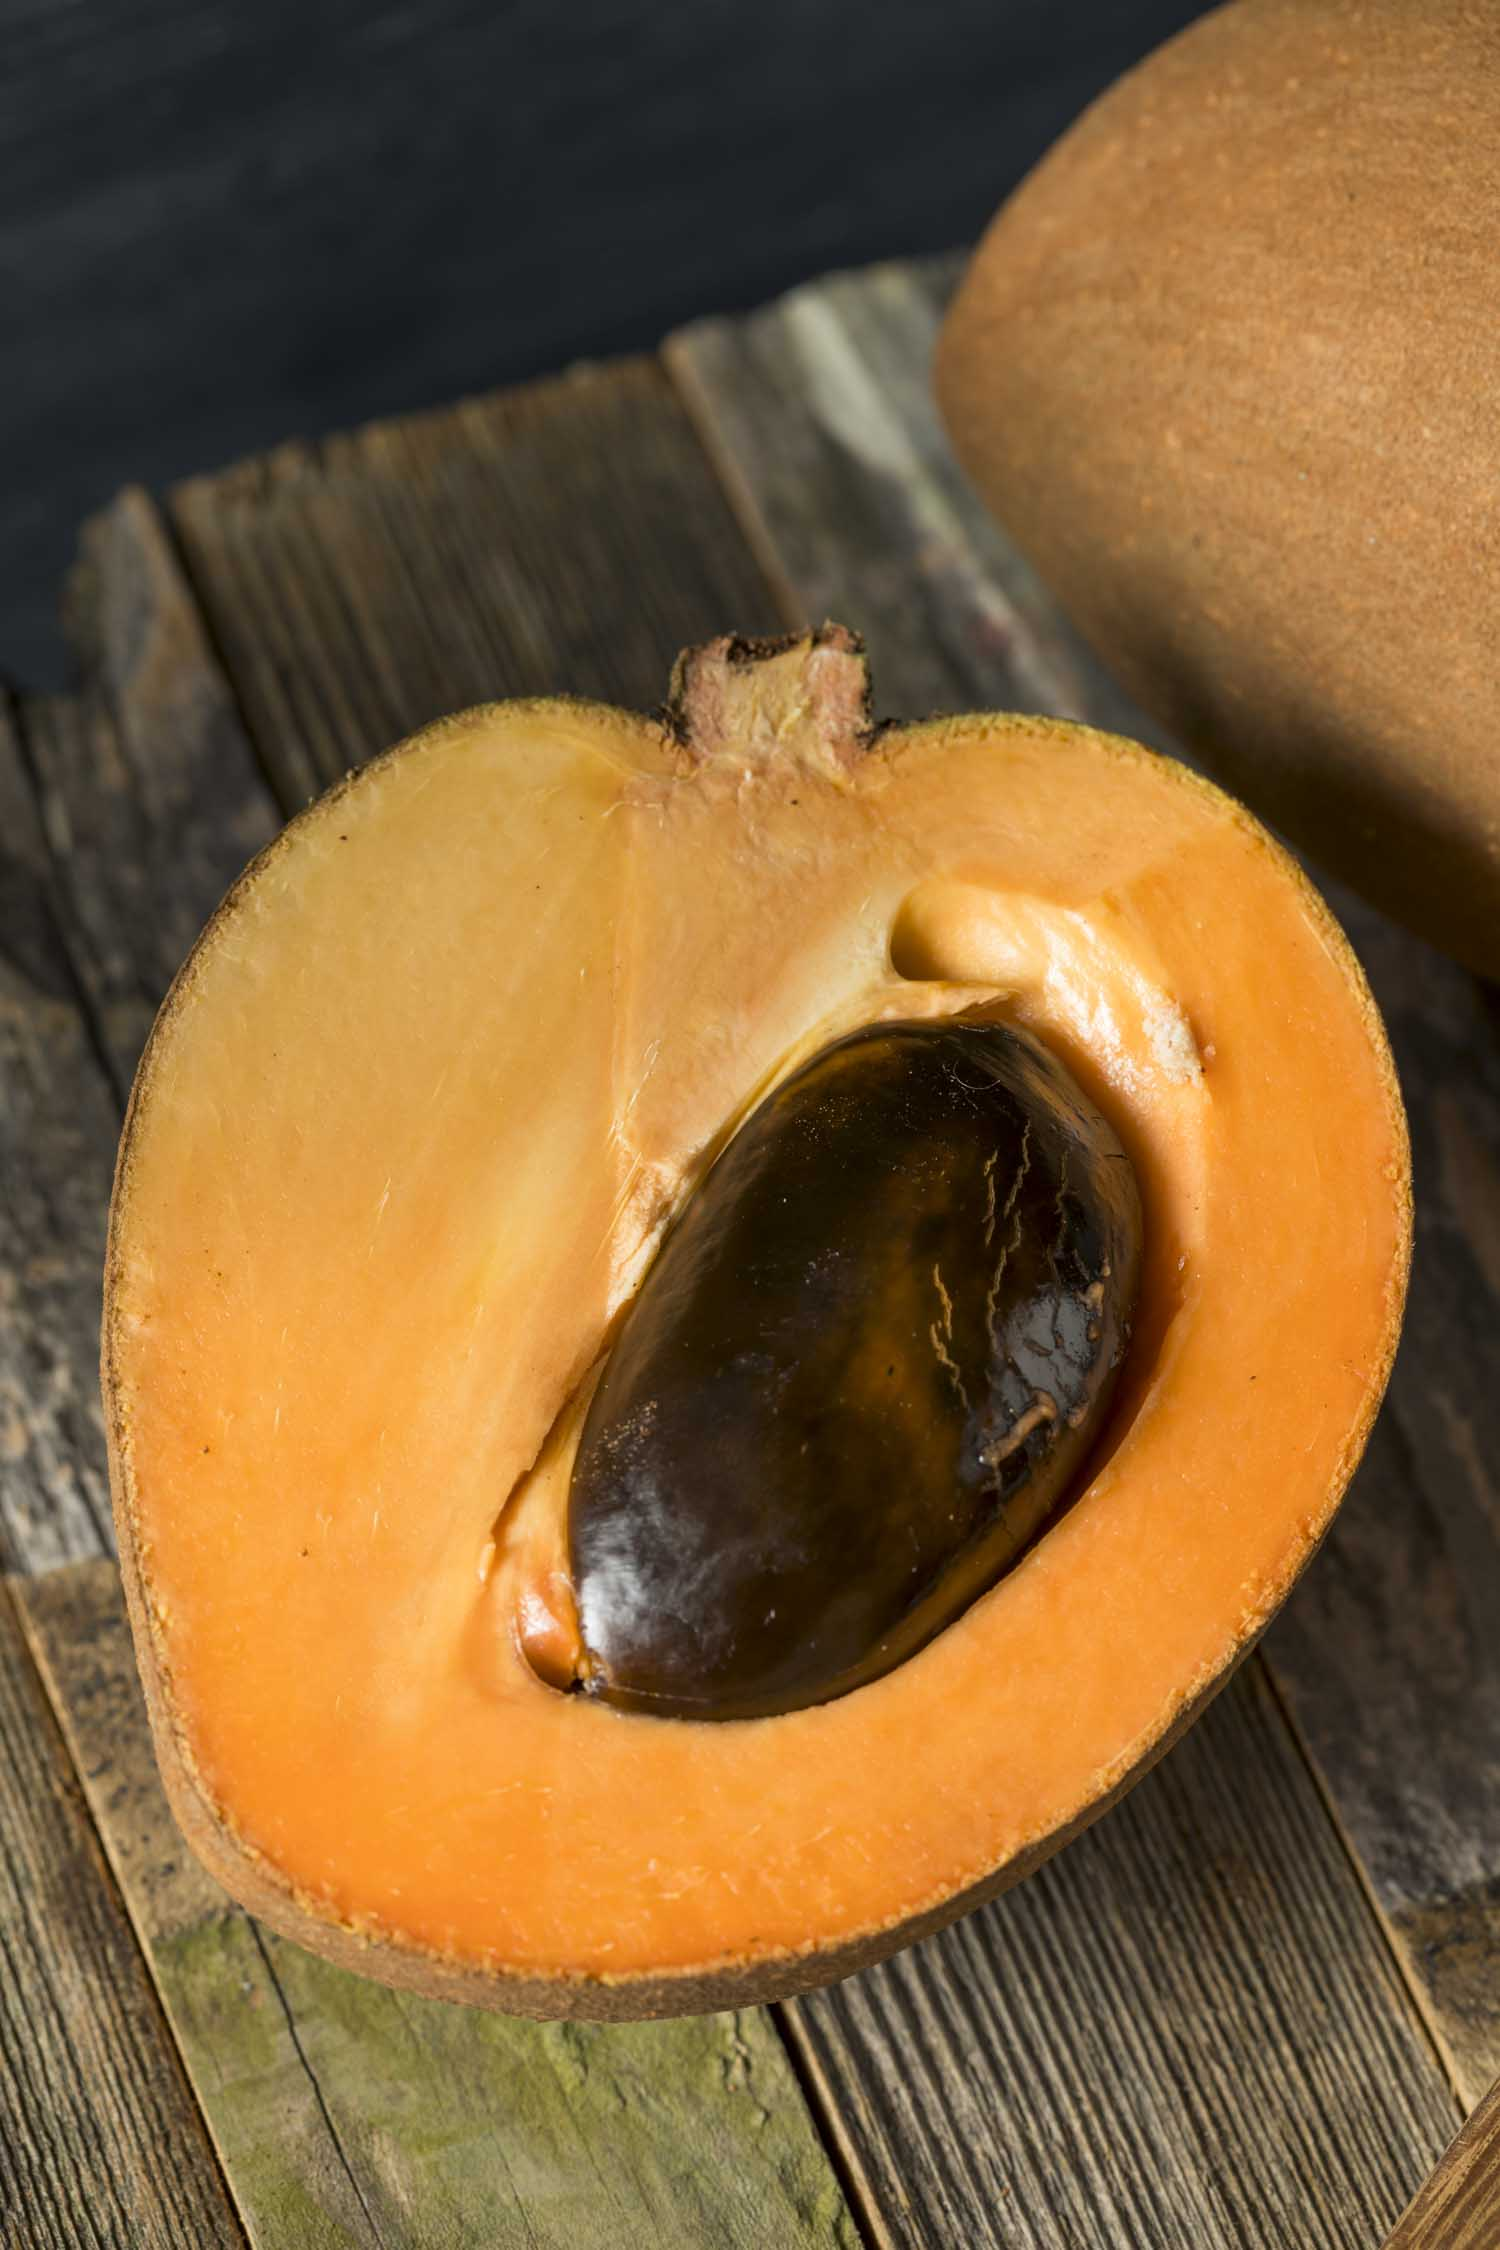 Raw Organic Brown Mamey Fruit with a Brown Seed a common Cuban fruit